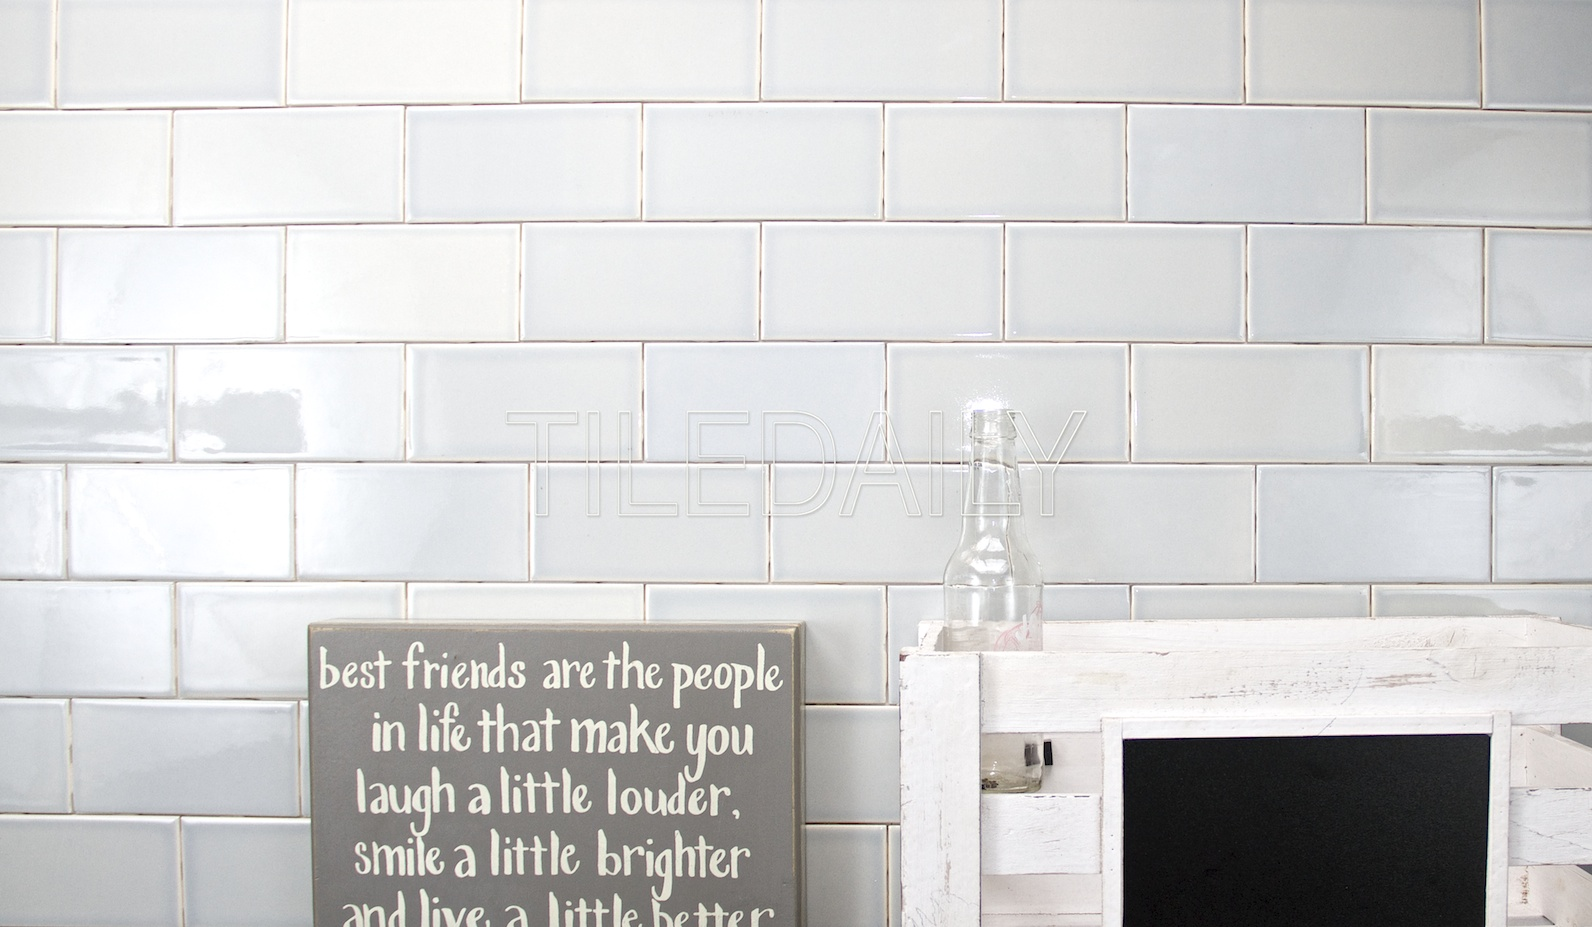 3x6 ice blue ceramic subway tile available at tiledaily